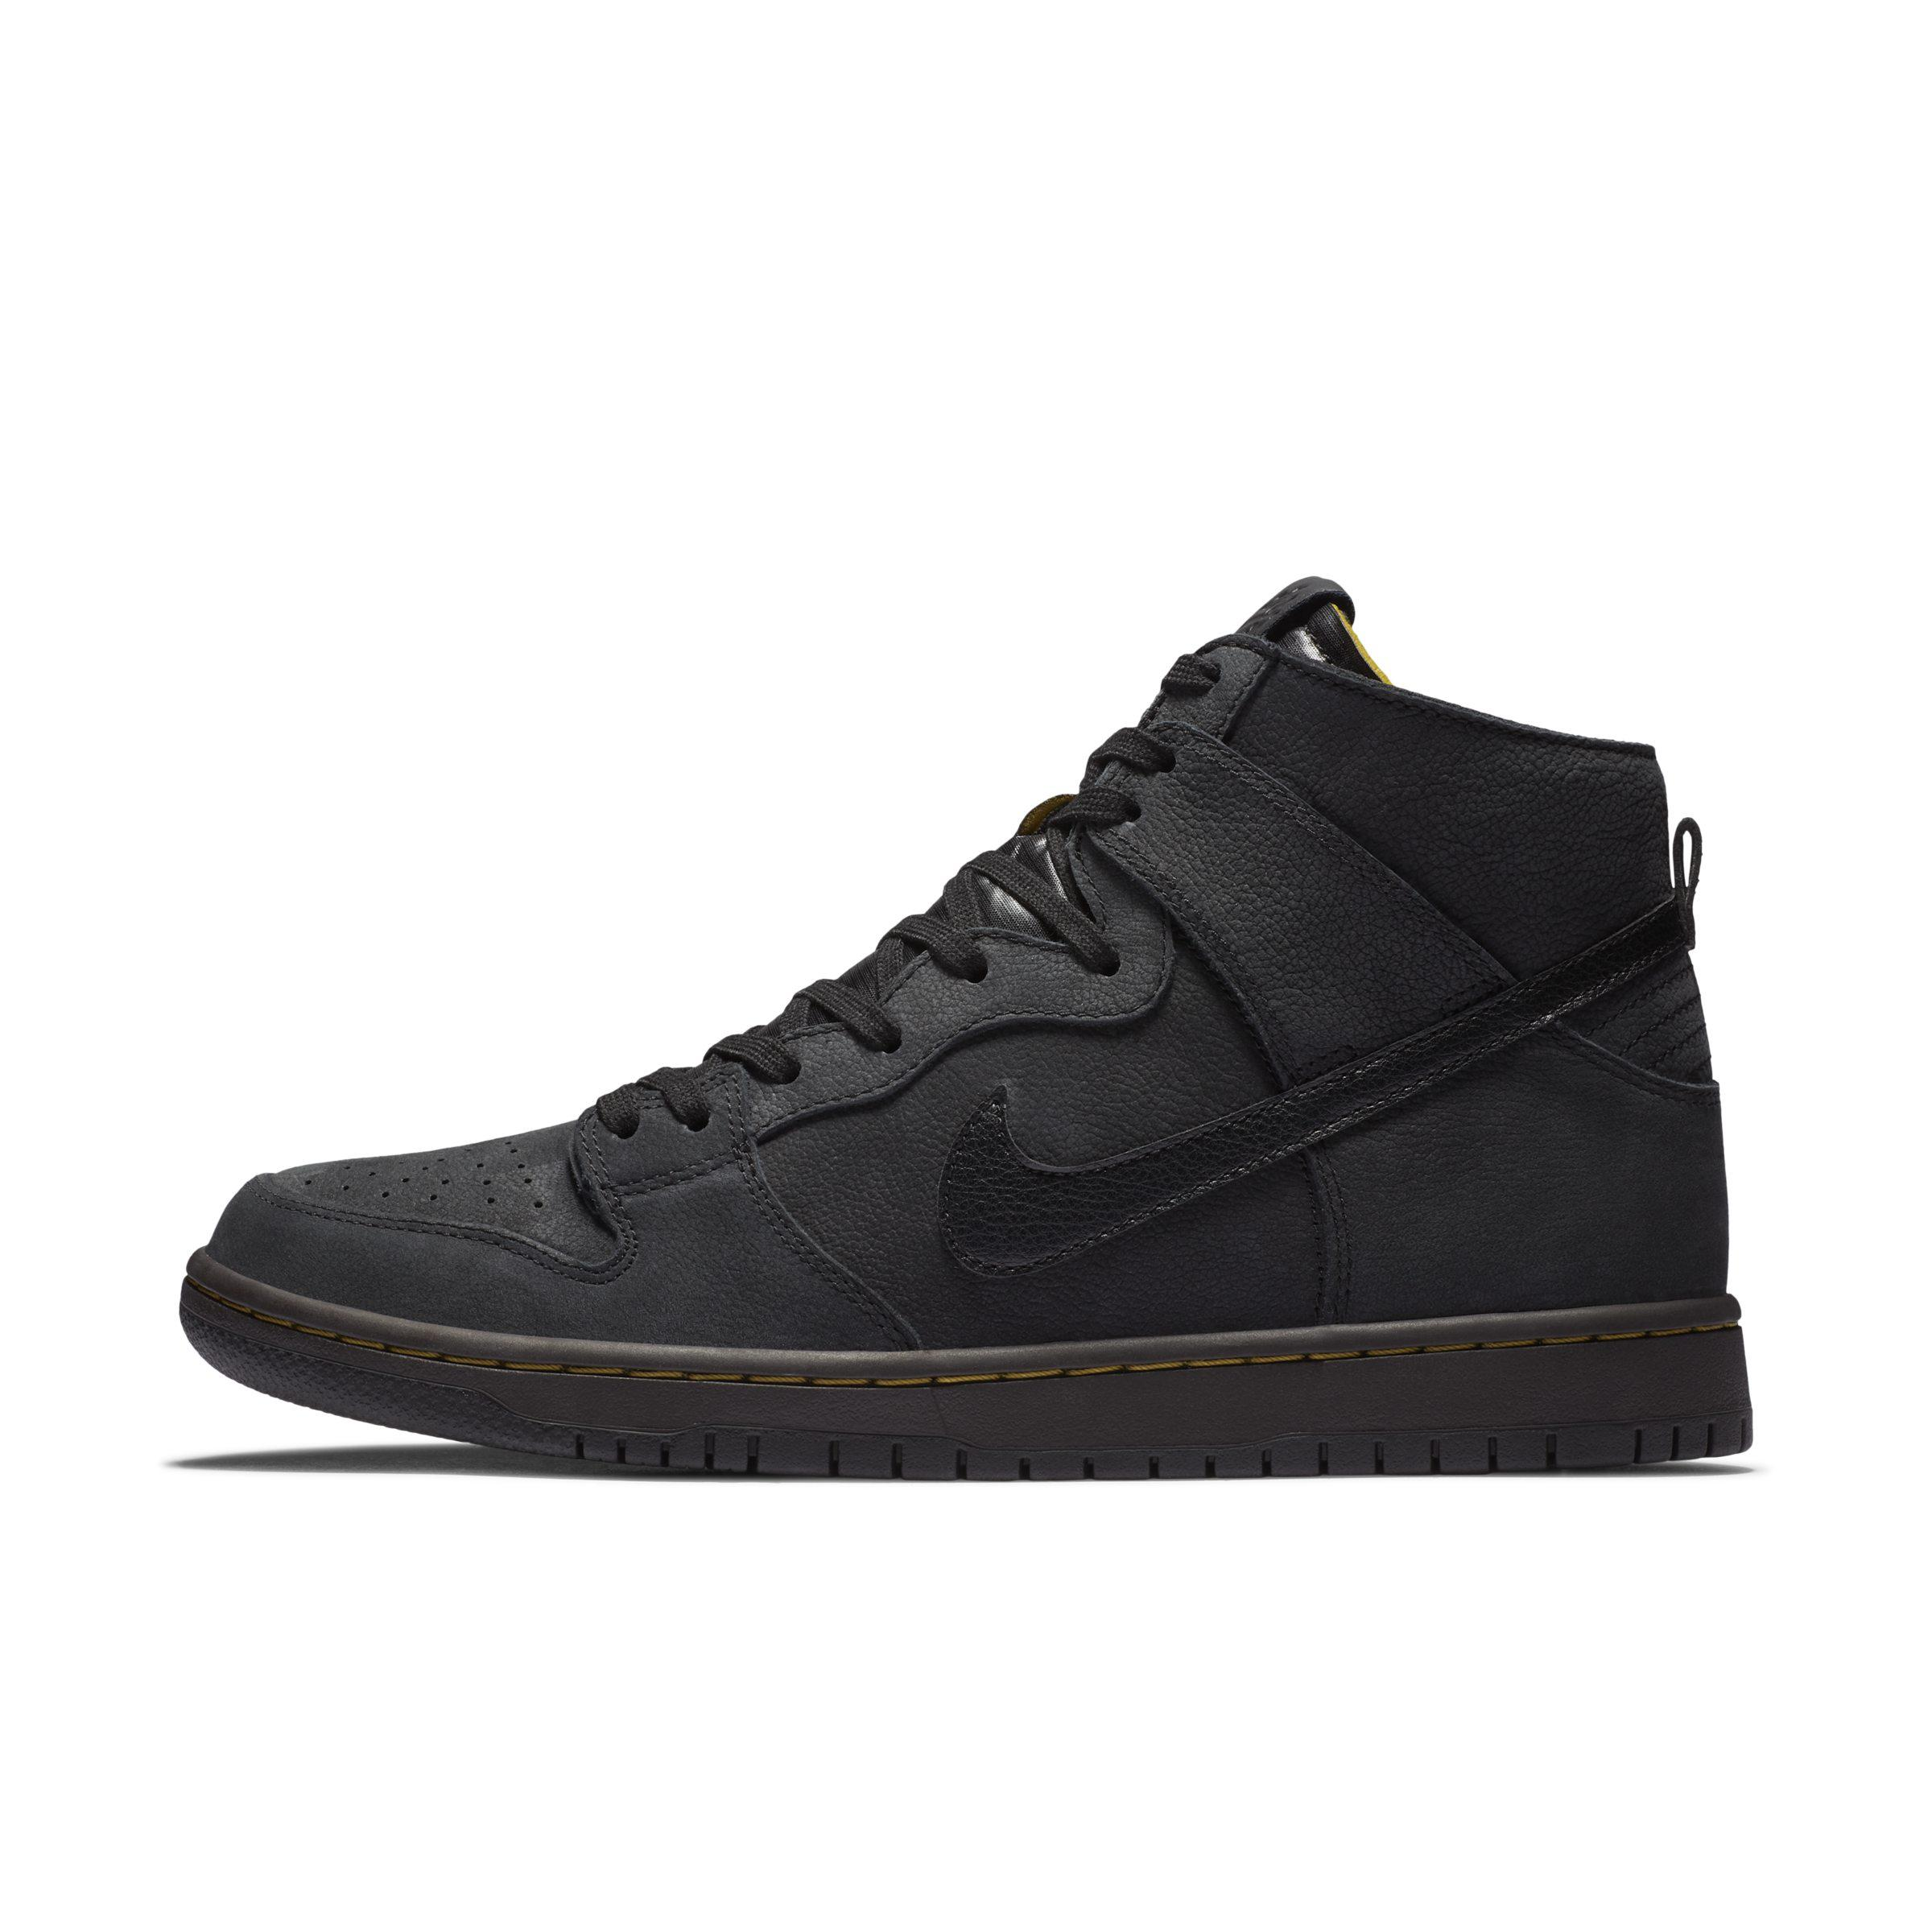 more photos b68e7 82813 Nike Sb Zoom Dunk High Pro Deconstructed Premium Skate Shoe in Black ...